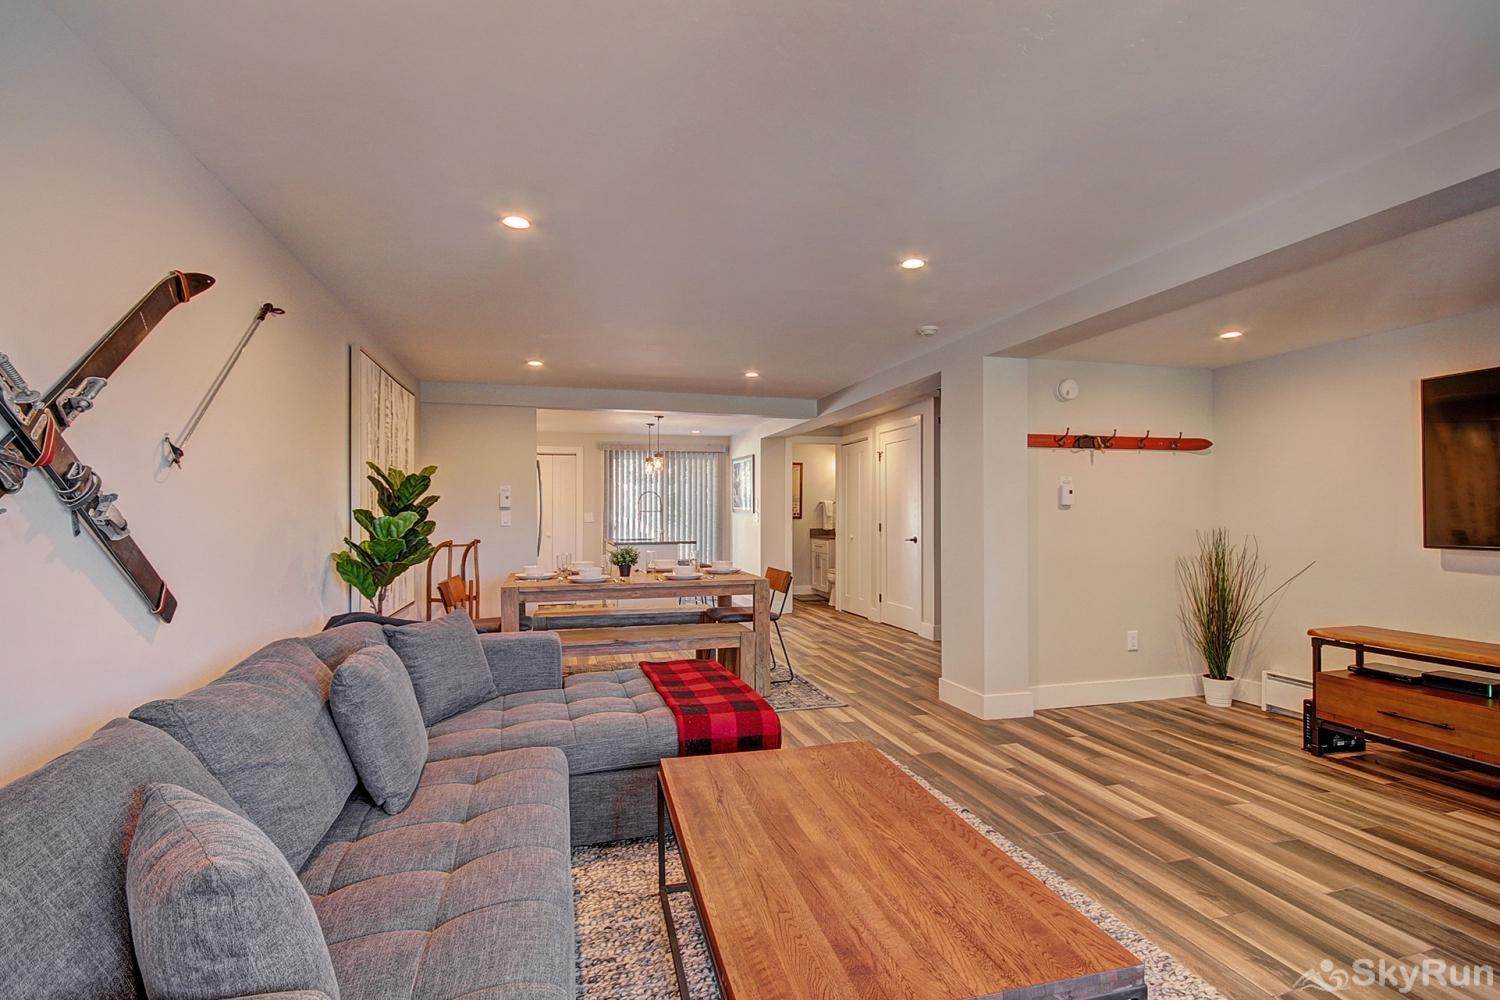 First Last Chance Fully remodeled Breckenridge ski condo